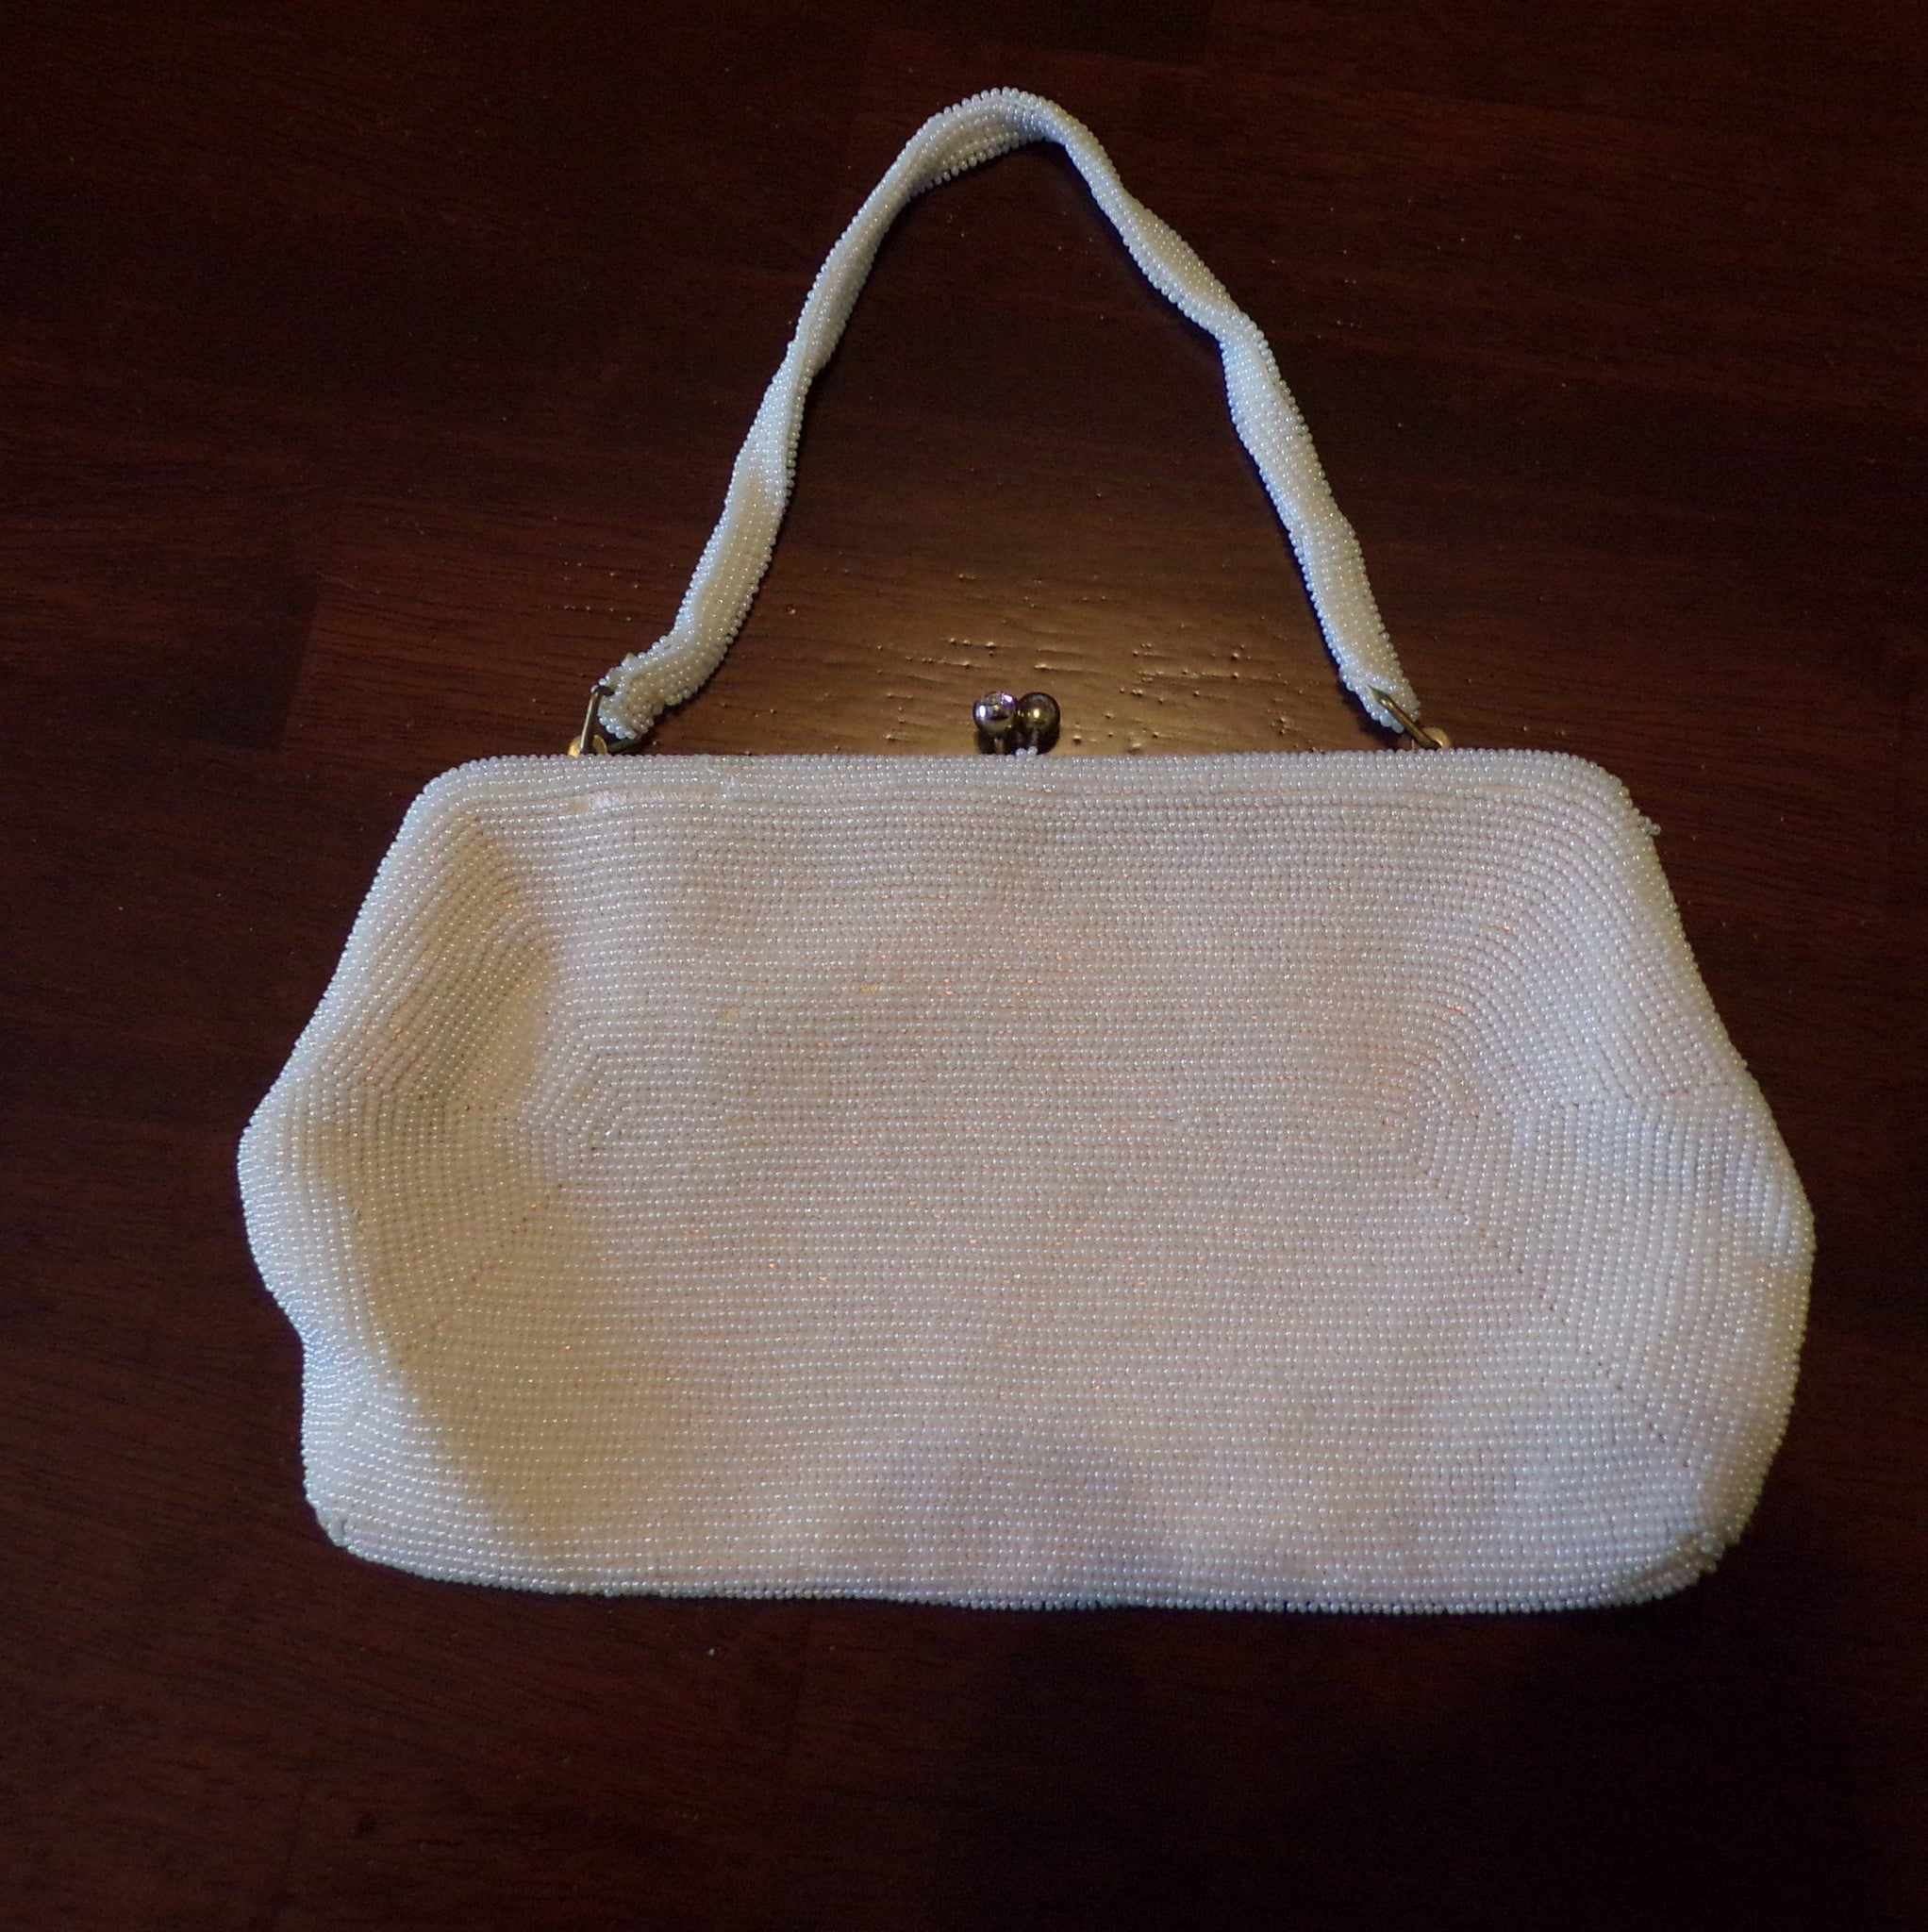 VINTAGE WEDDING PURSE 1950's 50's beaded clutch bag (J3)